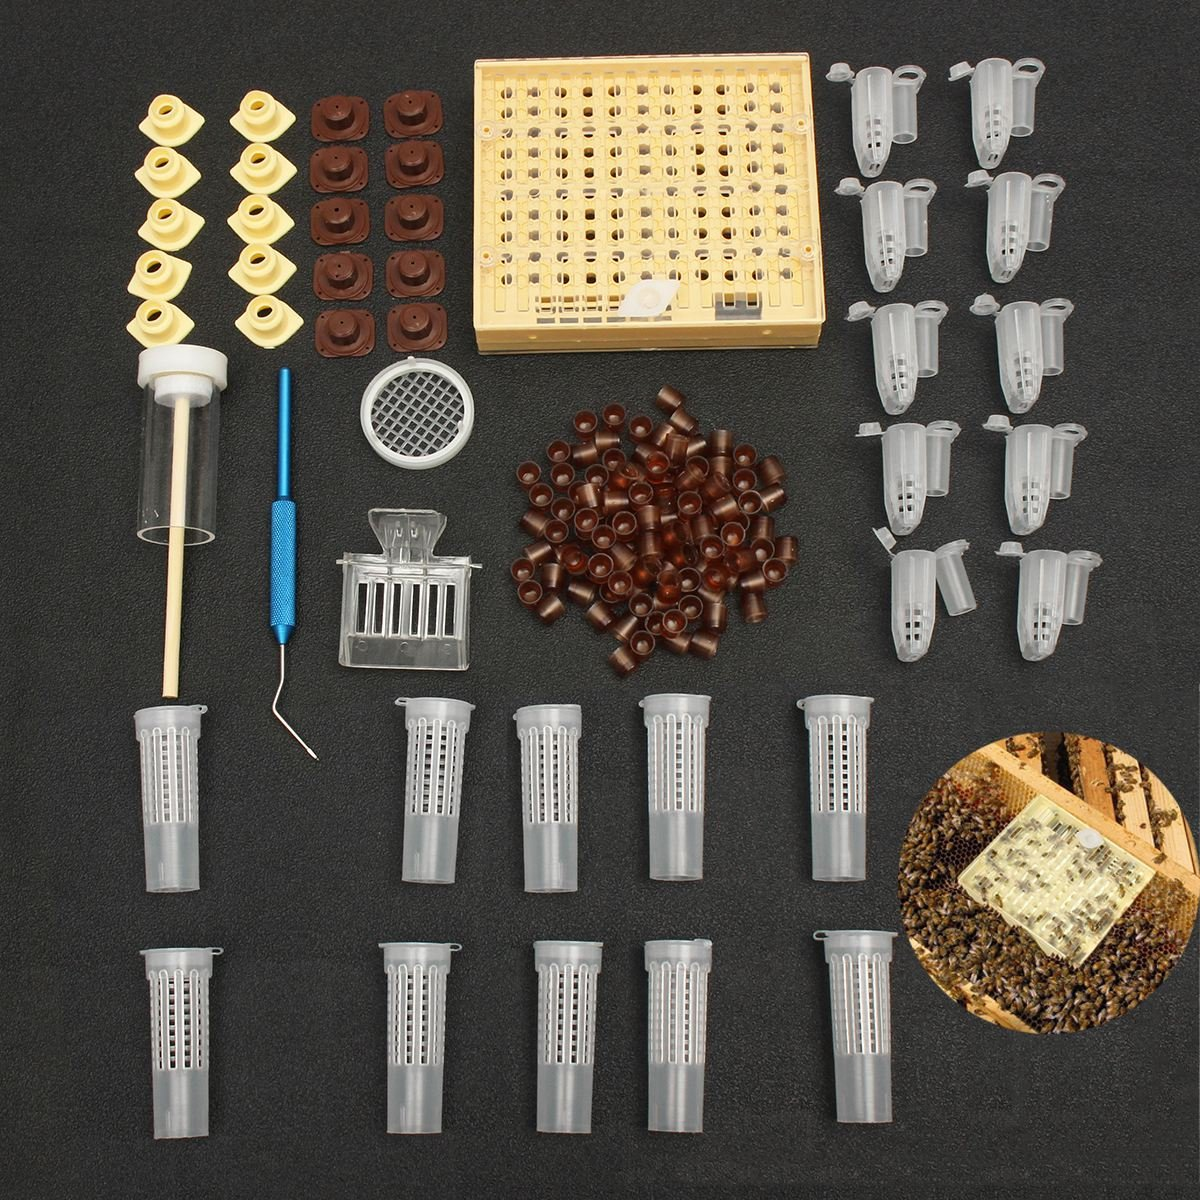 SODIAL 155pcs plastic Queen Rearing System Cultivating Box Cell Cups Bee Catcher Cage Beekeeping Tool Equipment